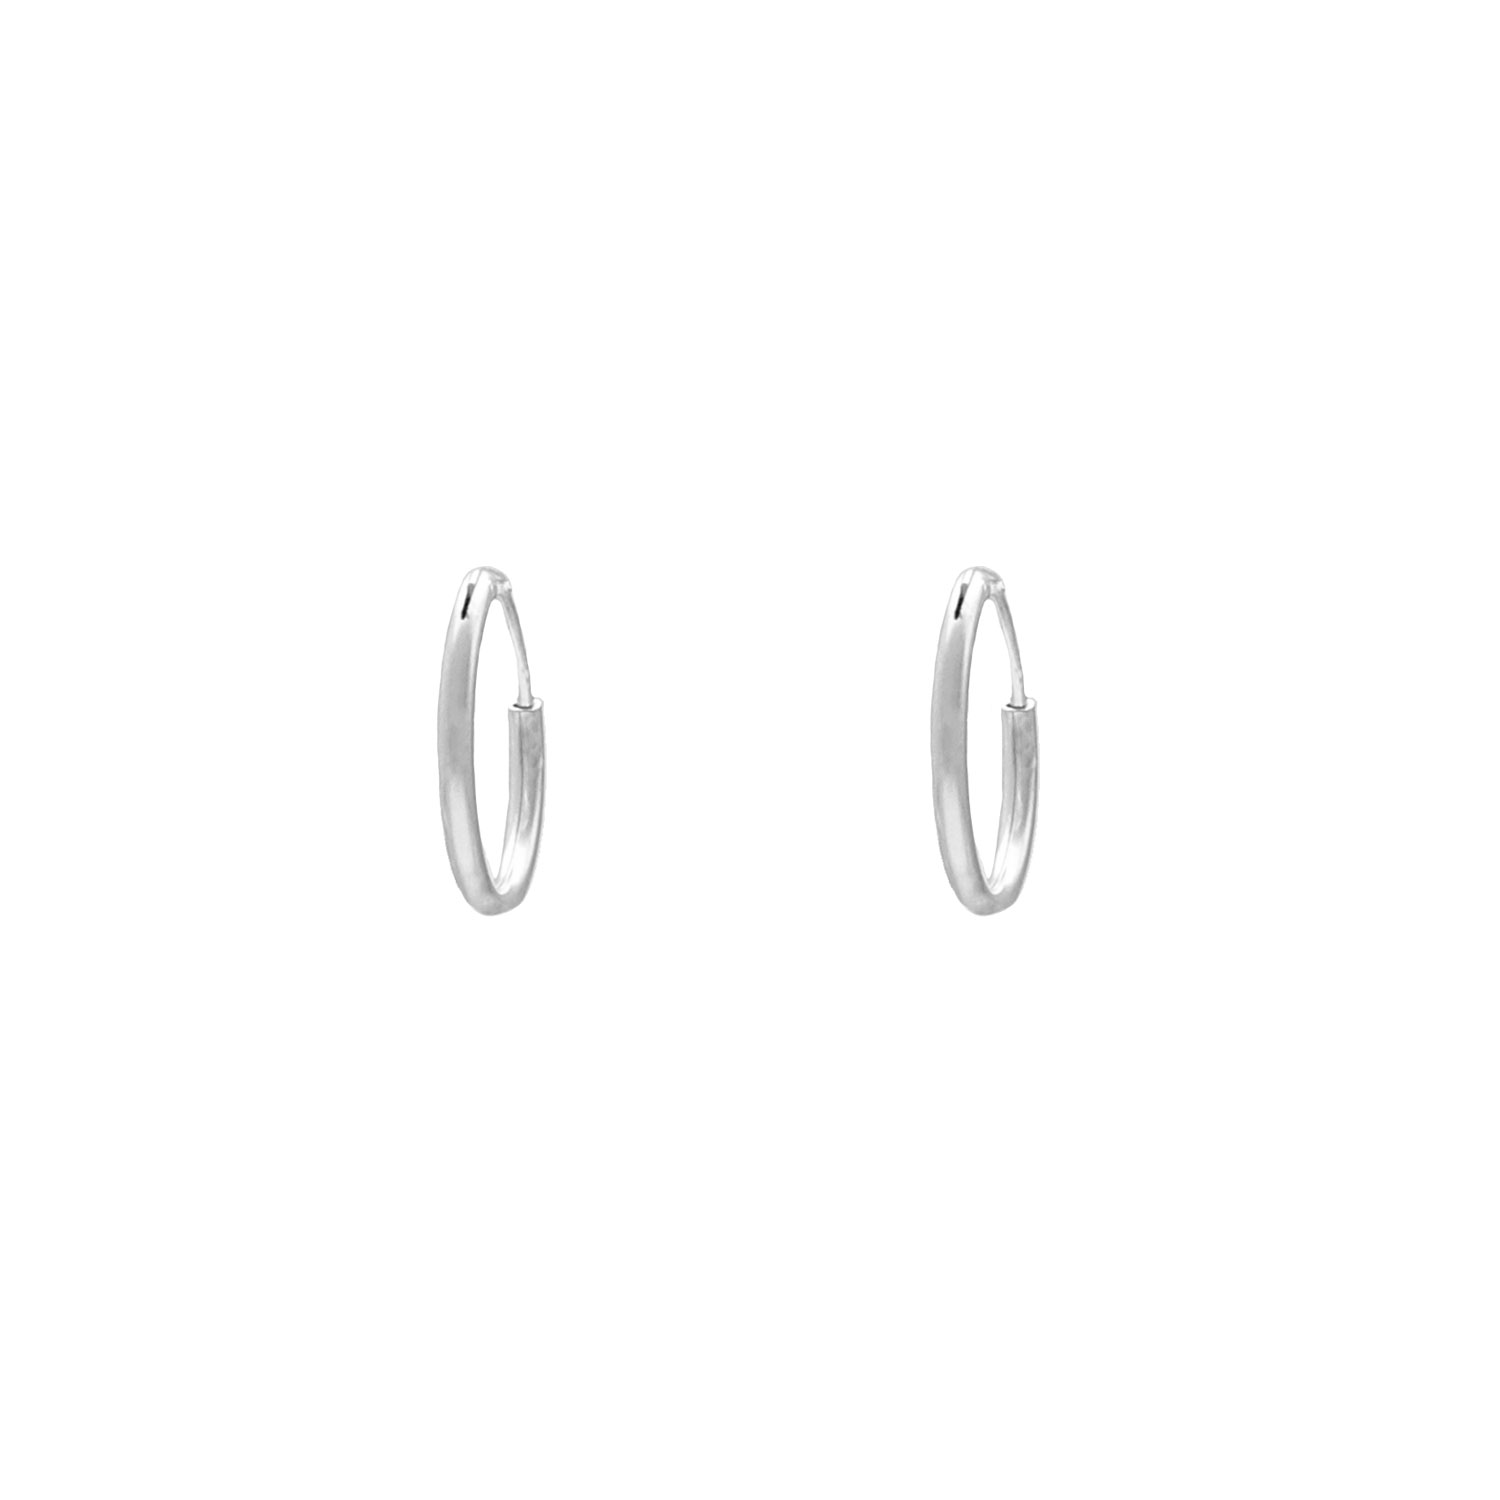 Oorringetjes Sterling Zilver 10 mm